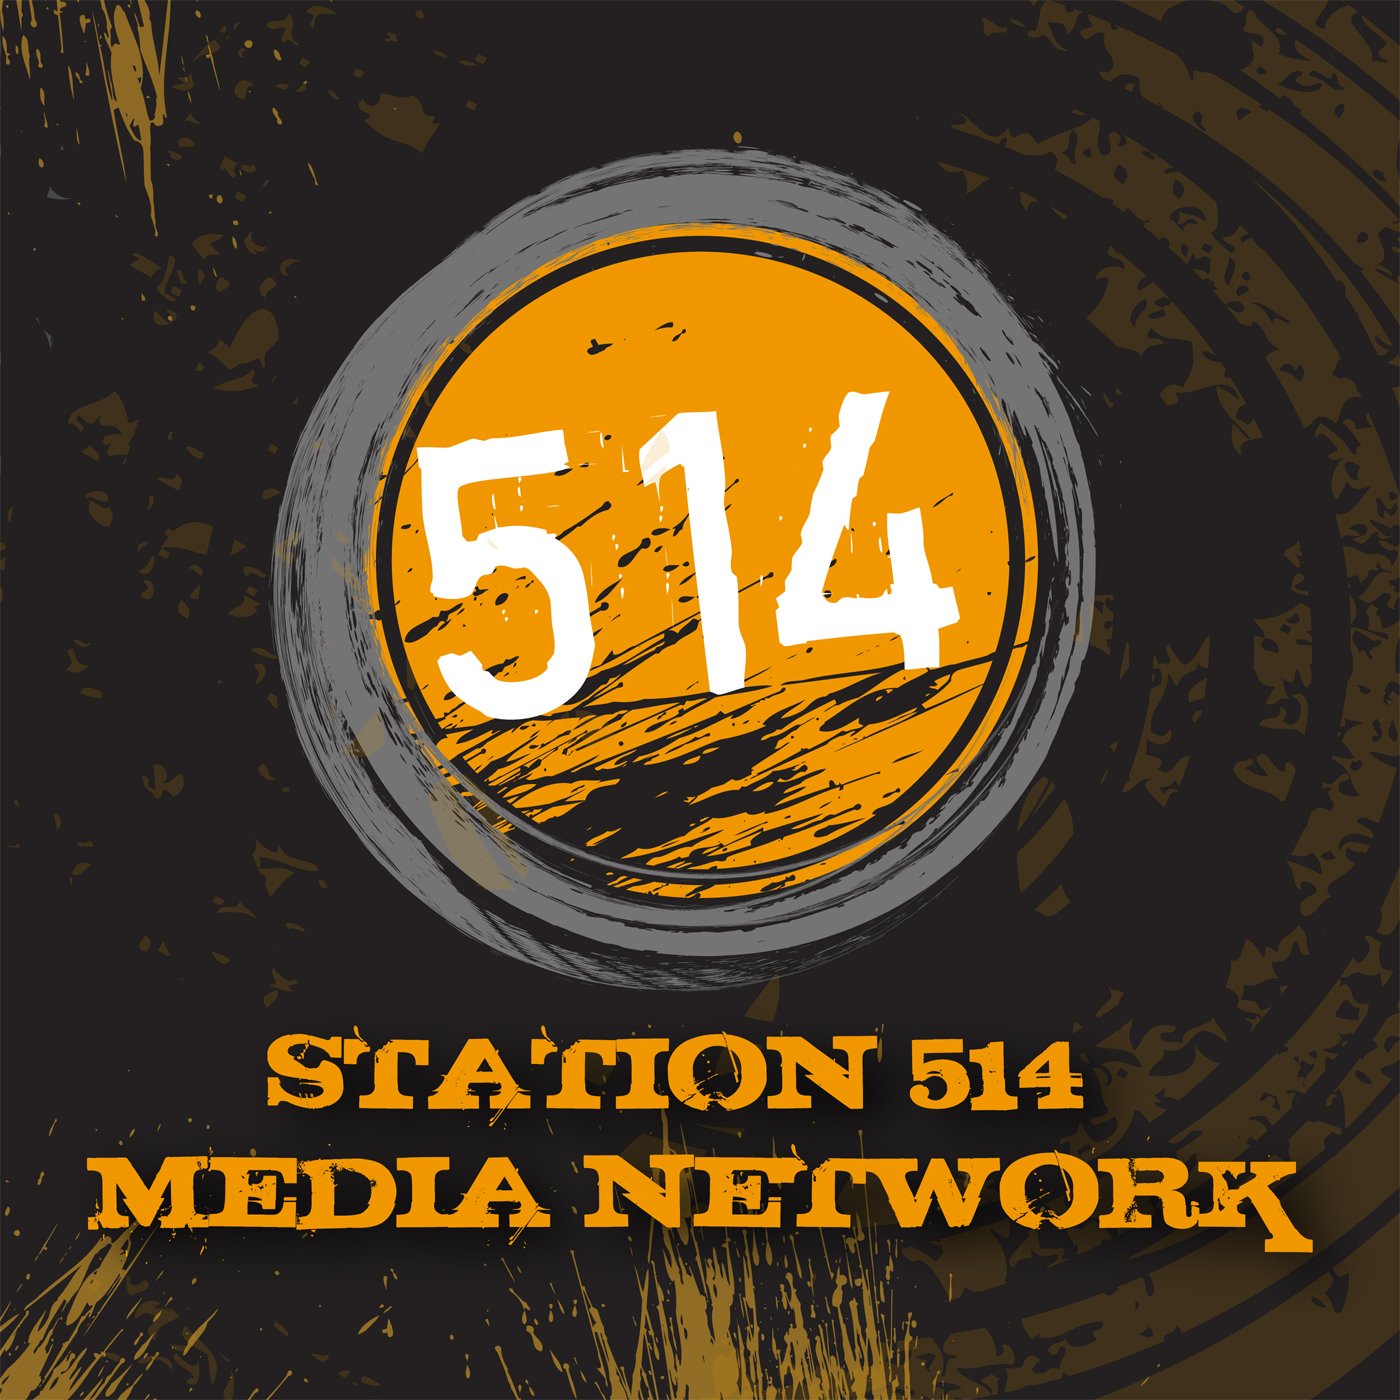 Station 514 Media Network: Backstage Pass | Organized Chaos | Rock, Alternative, Indie, Hip Hop, Christian | Interviews | Real Life | Encouragement | Purpose